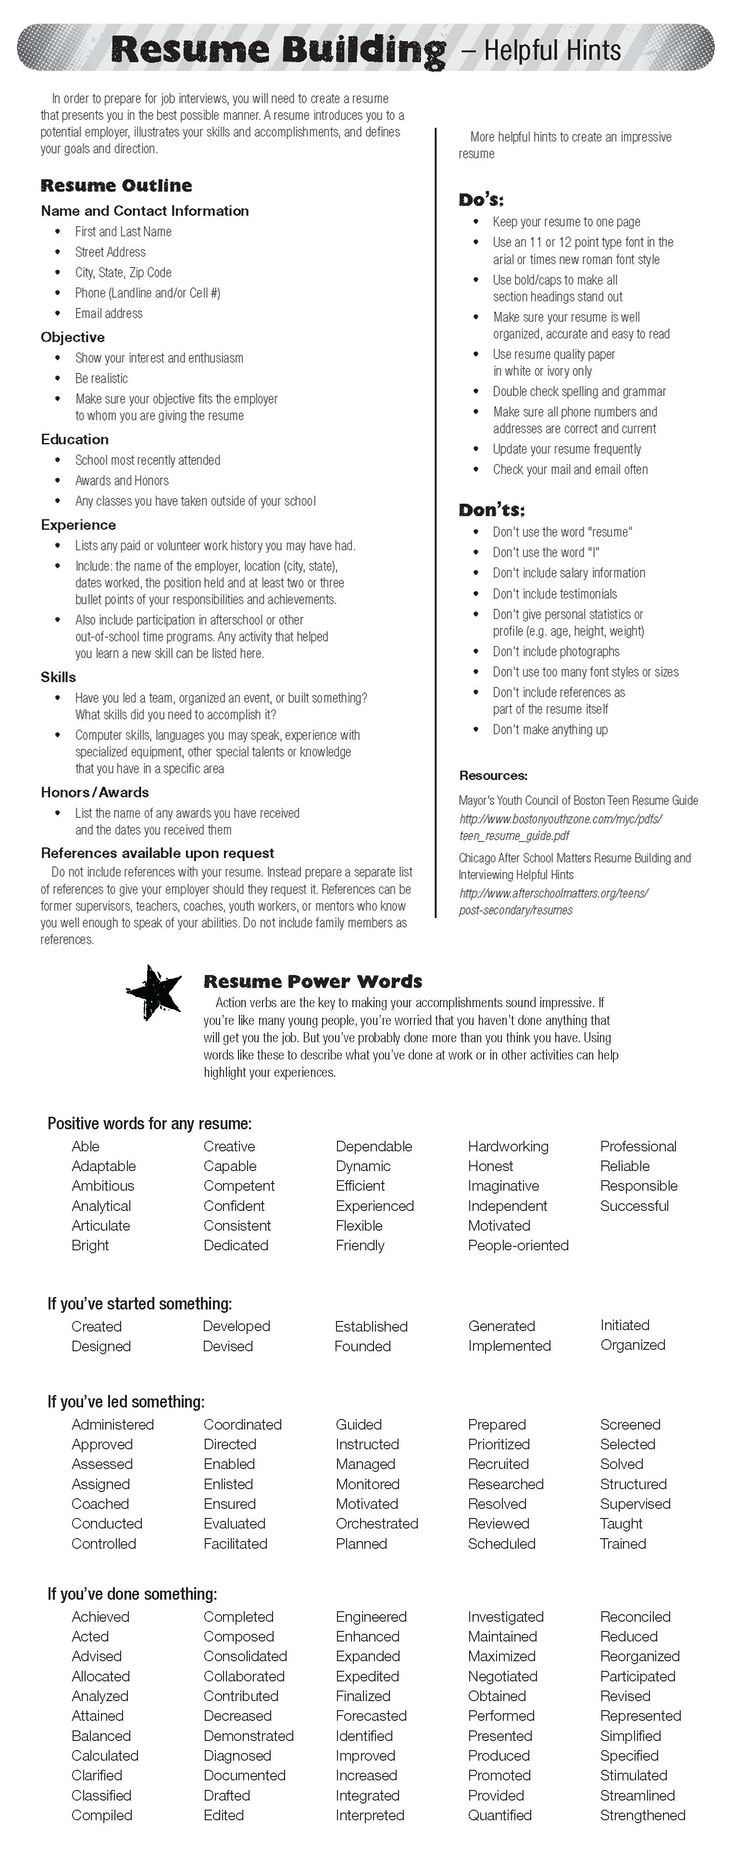 Opposenewapstandardsus  Terrific  Ideas About Resume On Pinterest  Cv Format Resume Cv And  With Lovely  Ideas About Resume On Pinterest  Cv Format Resume Cv And Resume Templates With Amazing Resume With No Work Experience Sample Also Job Skills To Put On A Resume In Addition Resume Funny And Powerful Resume As Well As Entry Level Phlebotomy Resume Additionally Business Analyst Resume Example From Pinterestcom With Opposenewapstandardsus  Lovely  Ideas About Resume On Pinterest  Cv Format Resume Cv And  With Amazing  Ideas About Resume On Pinterest  Cv Format Resume Cv And Resume Templates And Terrific Resume With No Work Experience Sample Also Job Skills To Put On A Resume In Addition Resume Funny From Pinterestcom